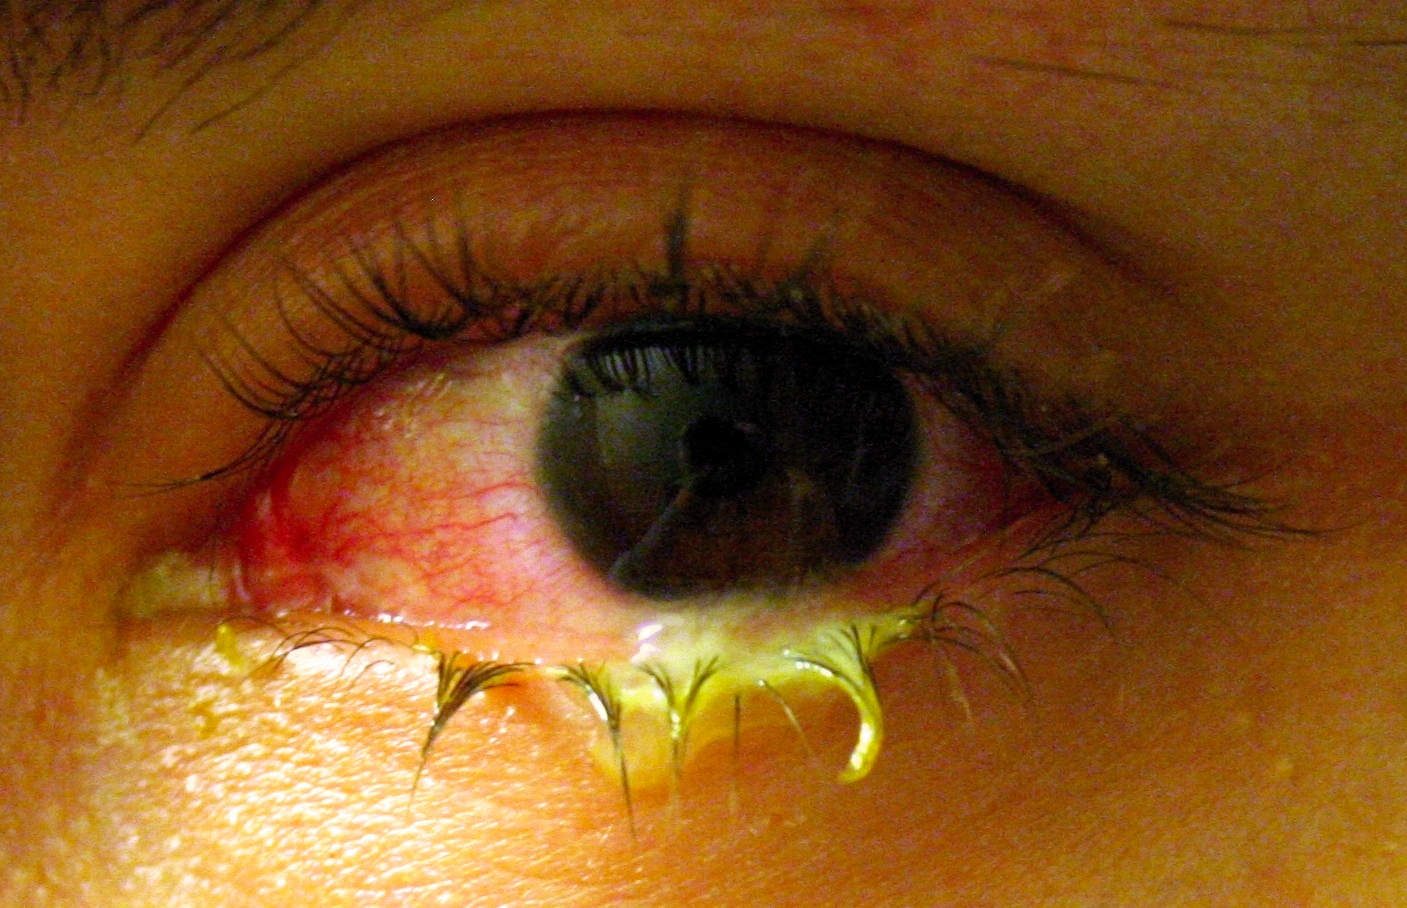 The significant, pus-like discharge associated with this conjunctivitis is suggestive of a bacterial infection.